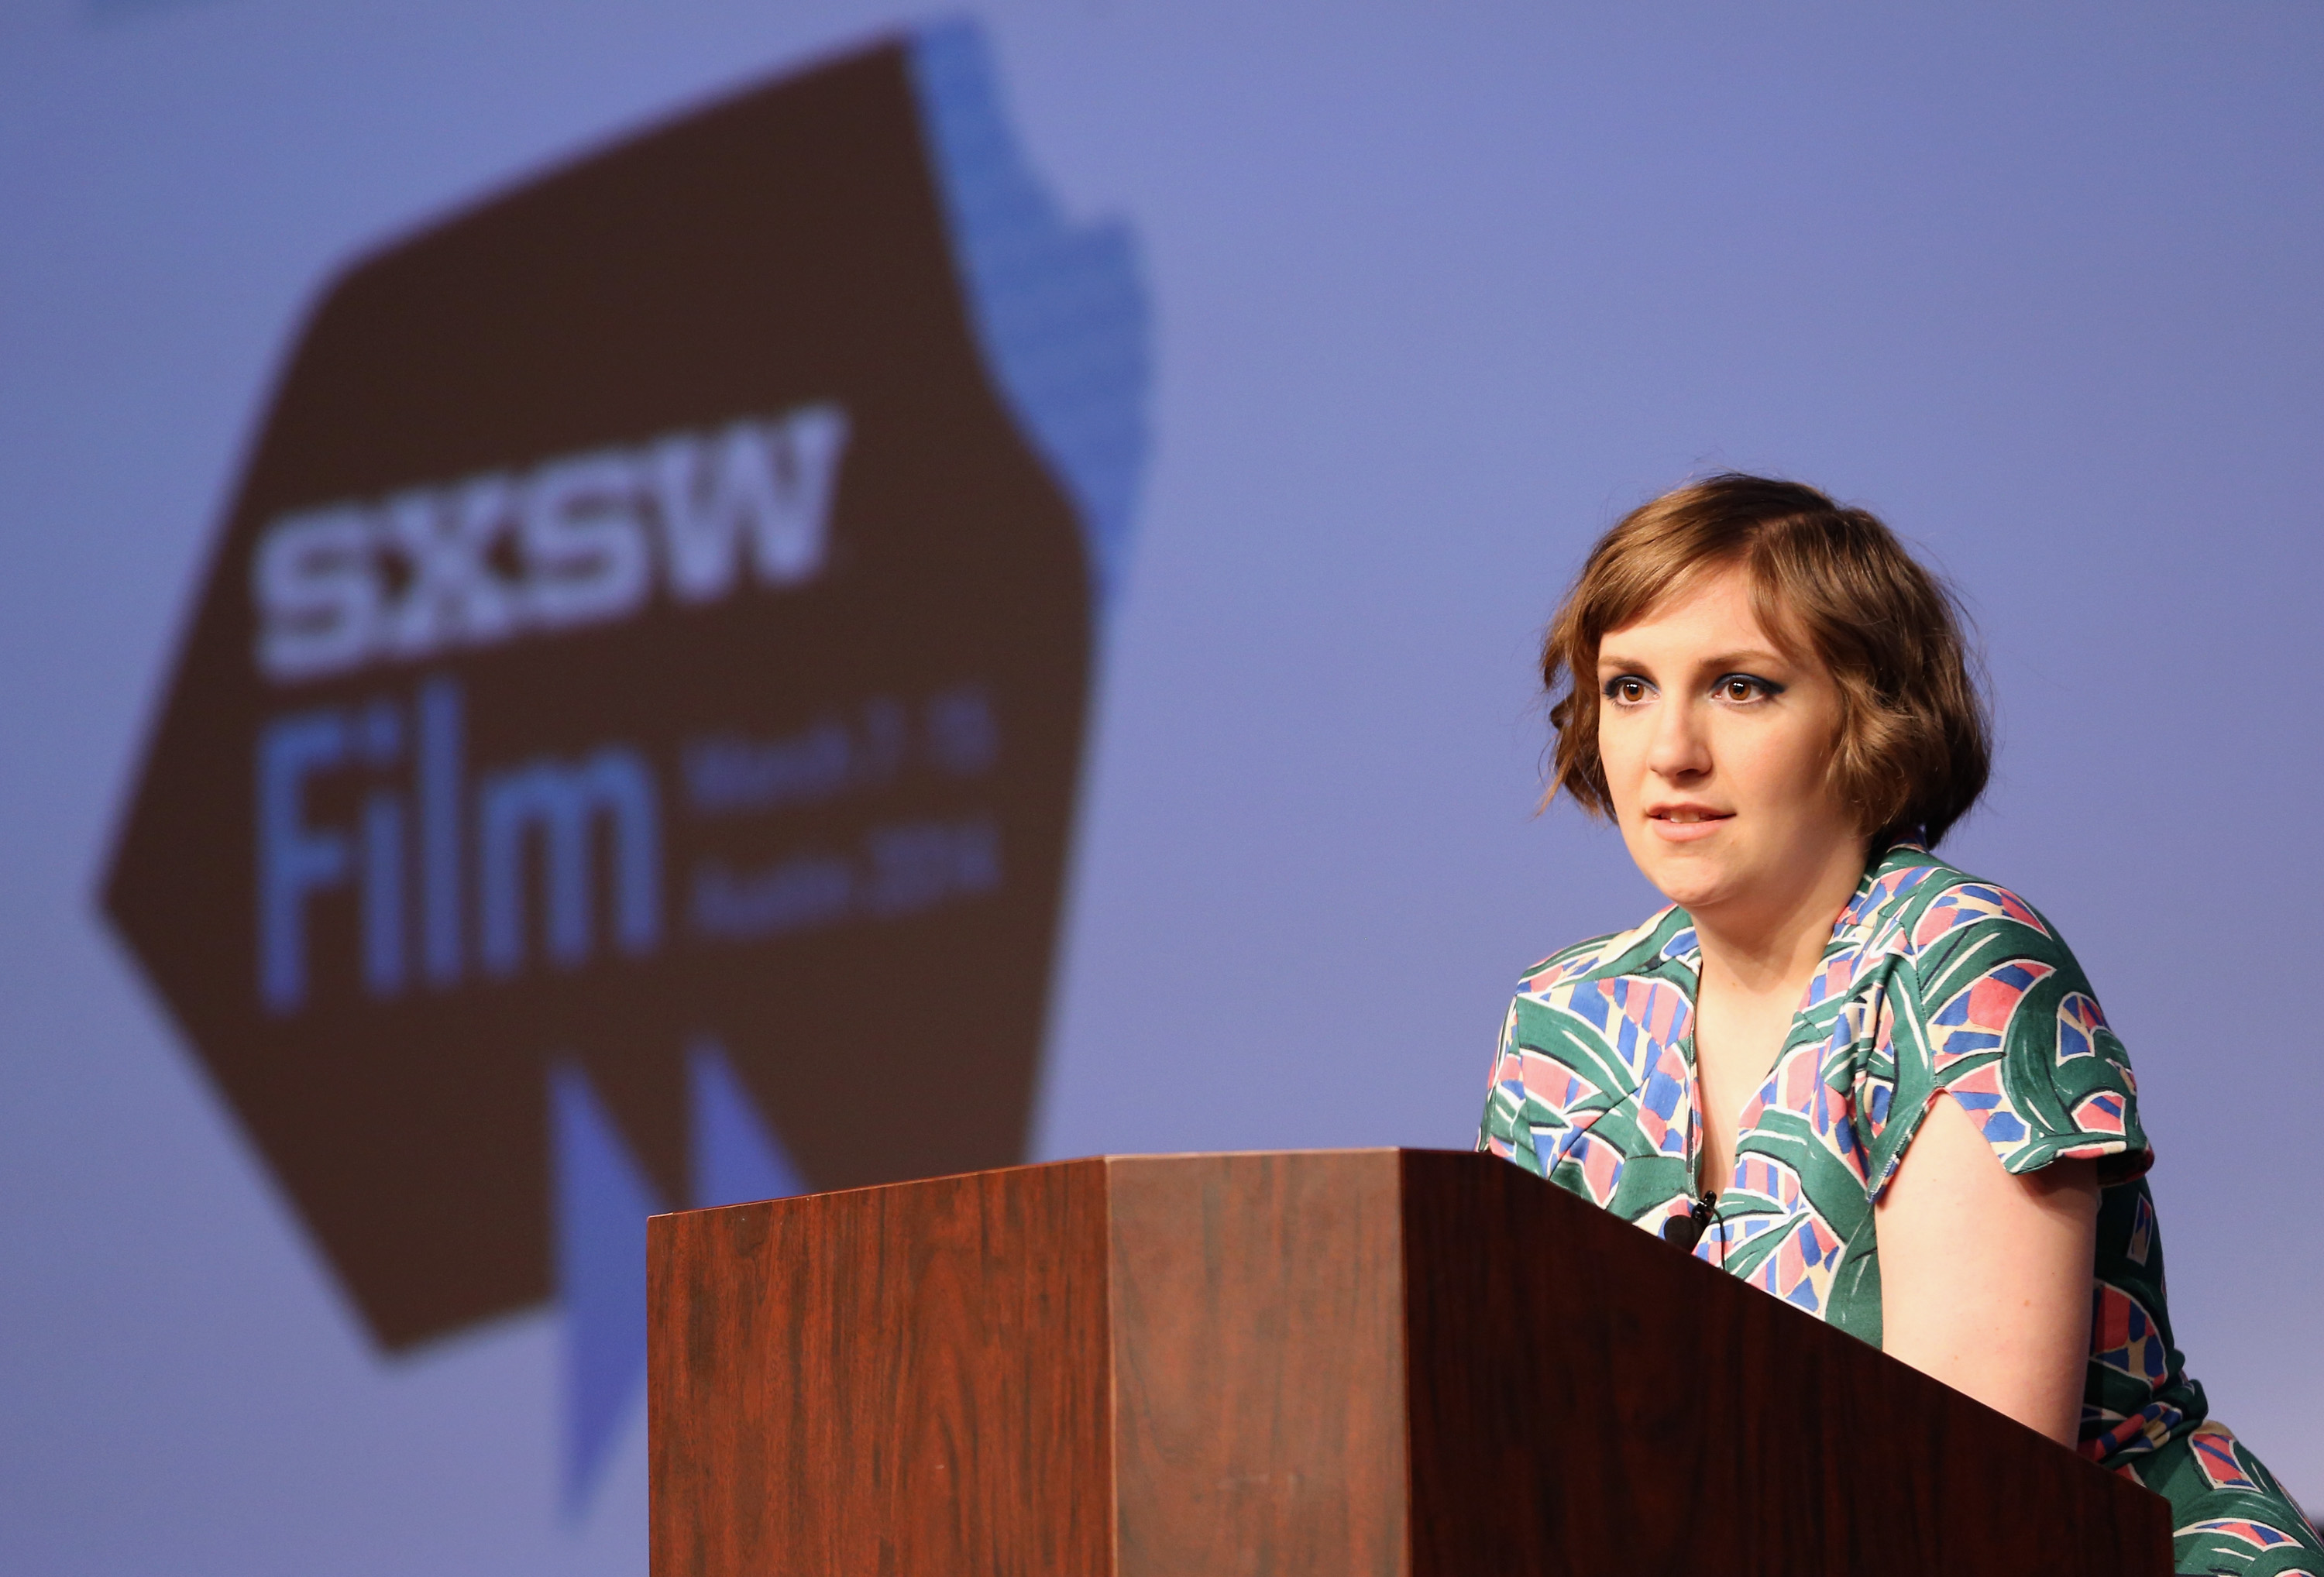 Lena Dunham speaks onstage at the Lena Dunham Keynote during the 2014 SXSW Music, Film + Interactive Festival at Austin Convention Center on March 10, 2014 in Austin, Texas.